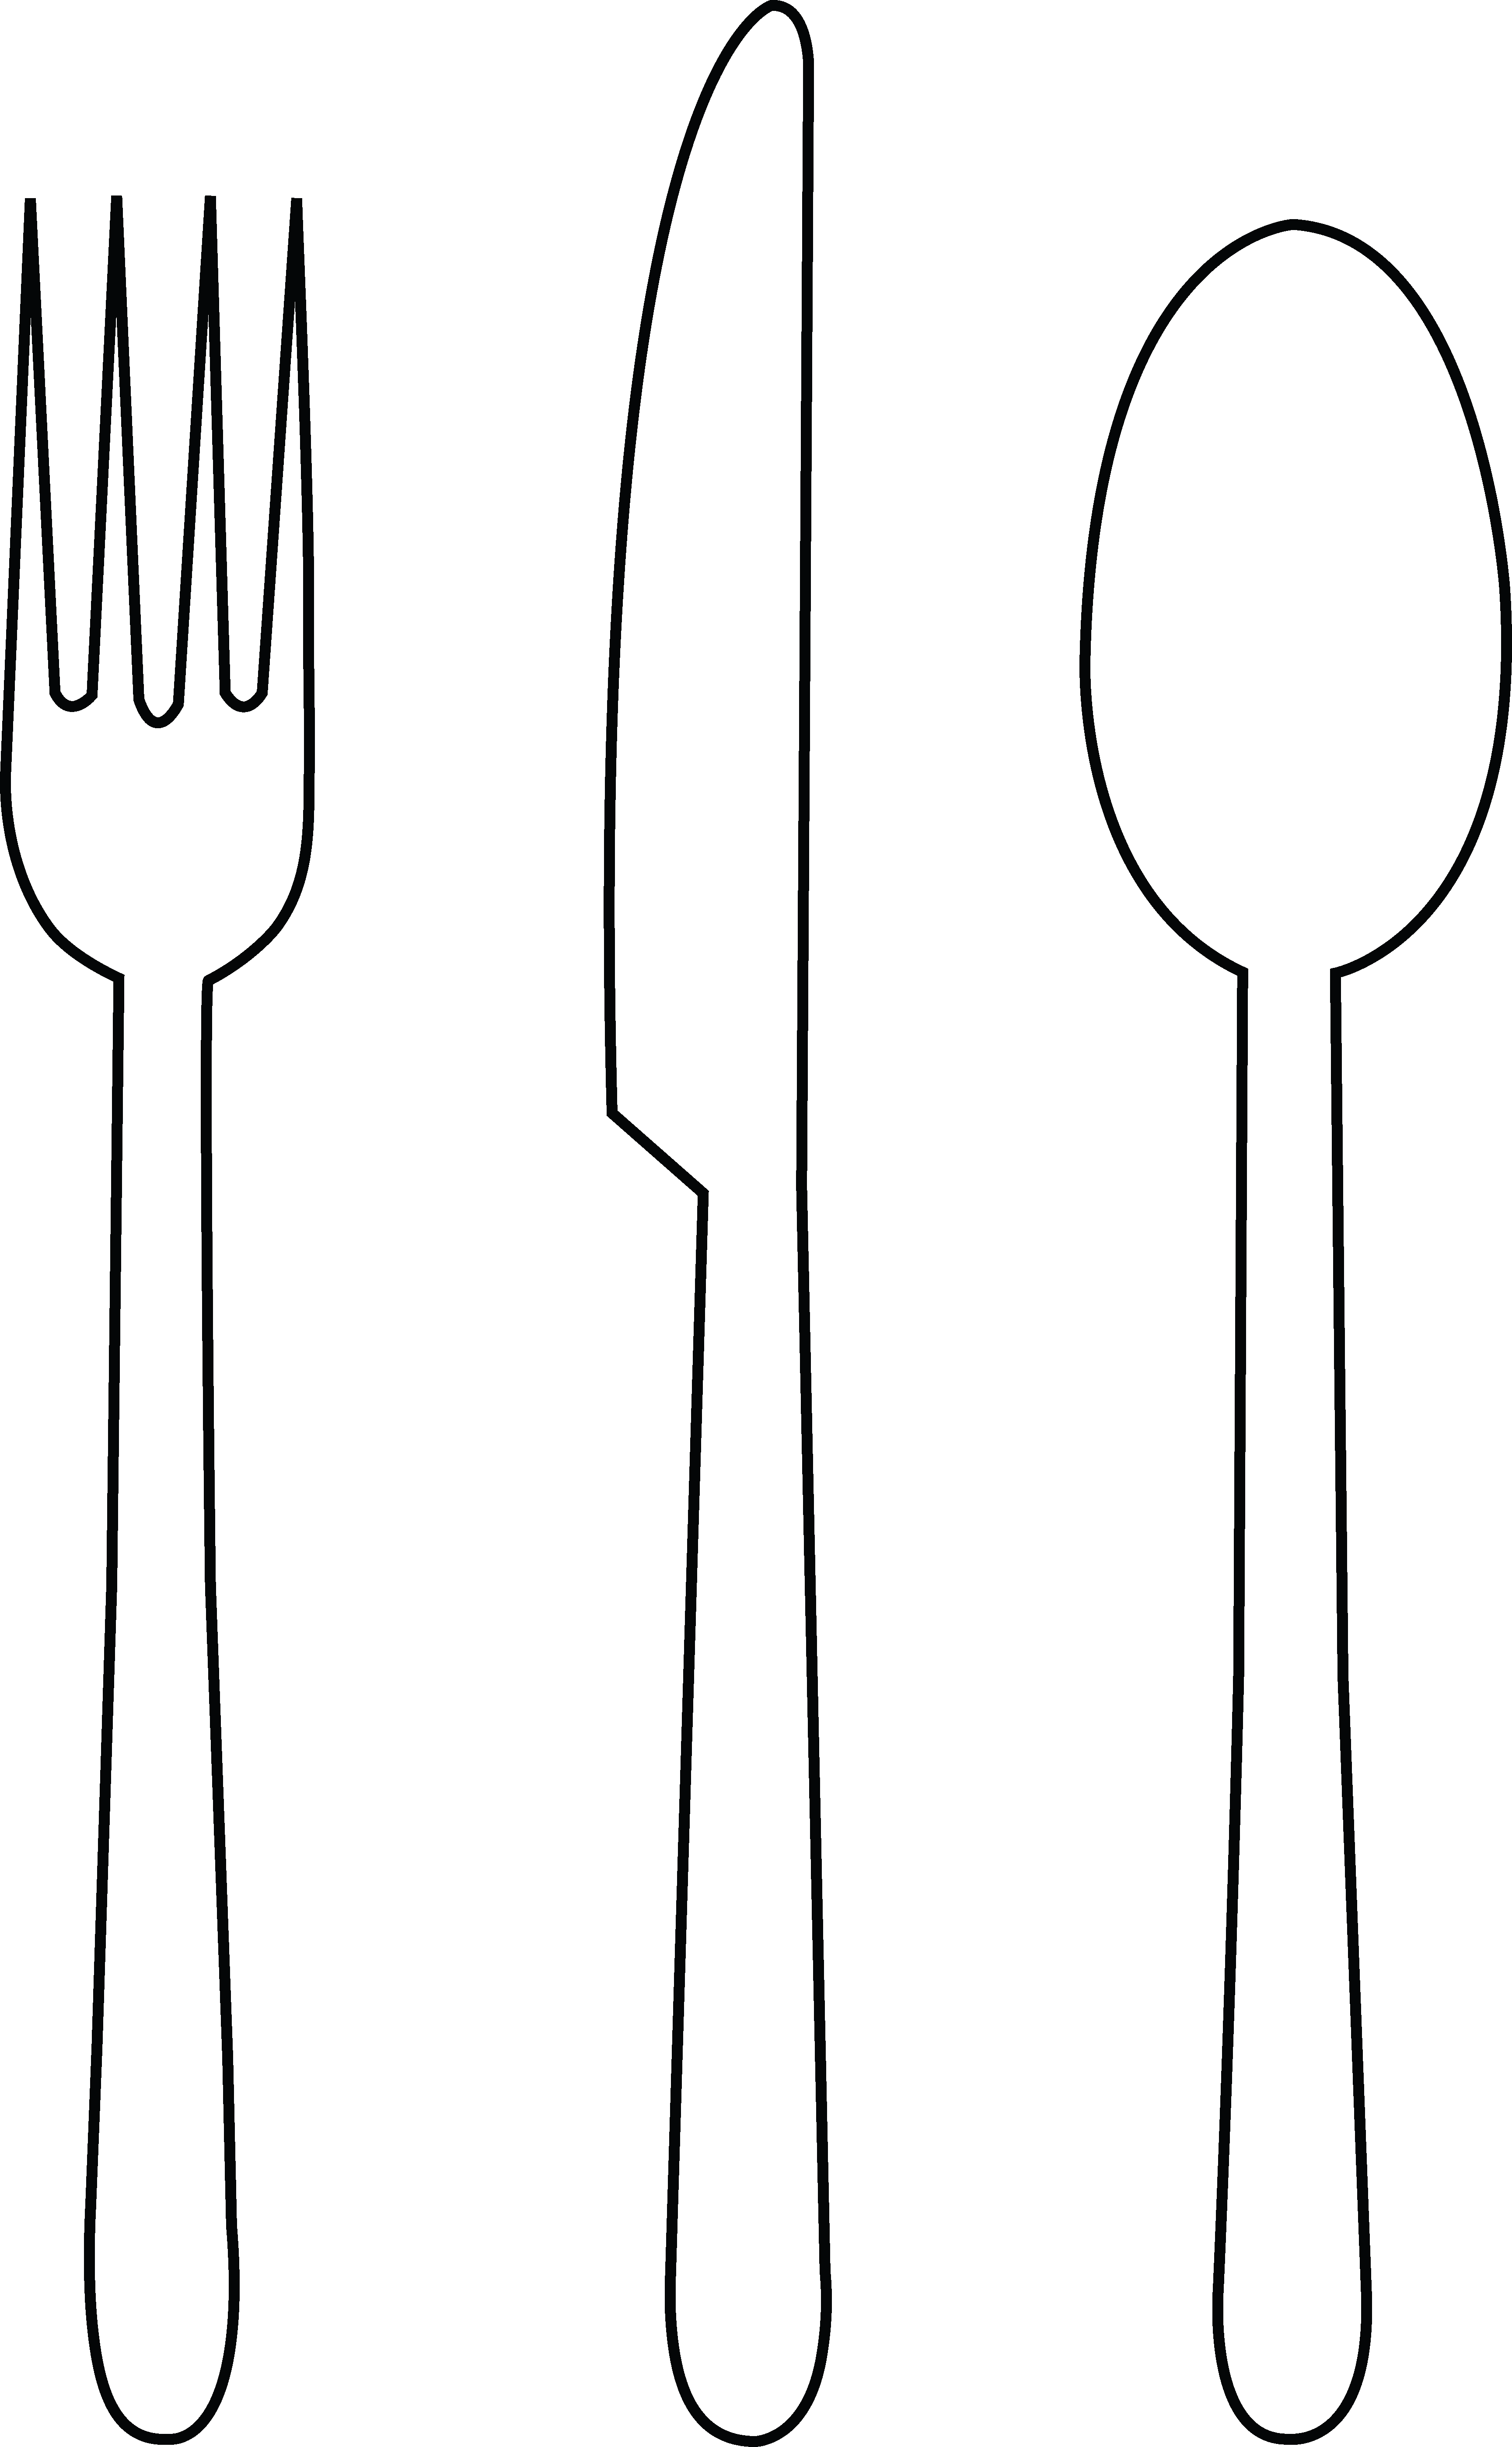 Fancy Fork Png Black And White - Fancy Fork Clipart Black And White · Fork Spoon And Knife Clipart, Transparent background PNG HD thumbnail